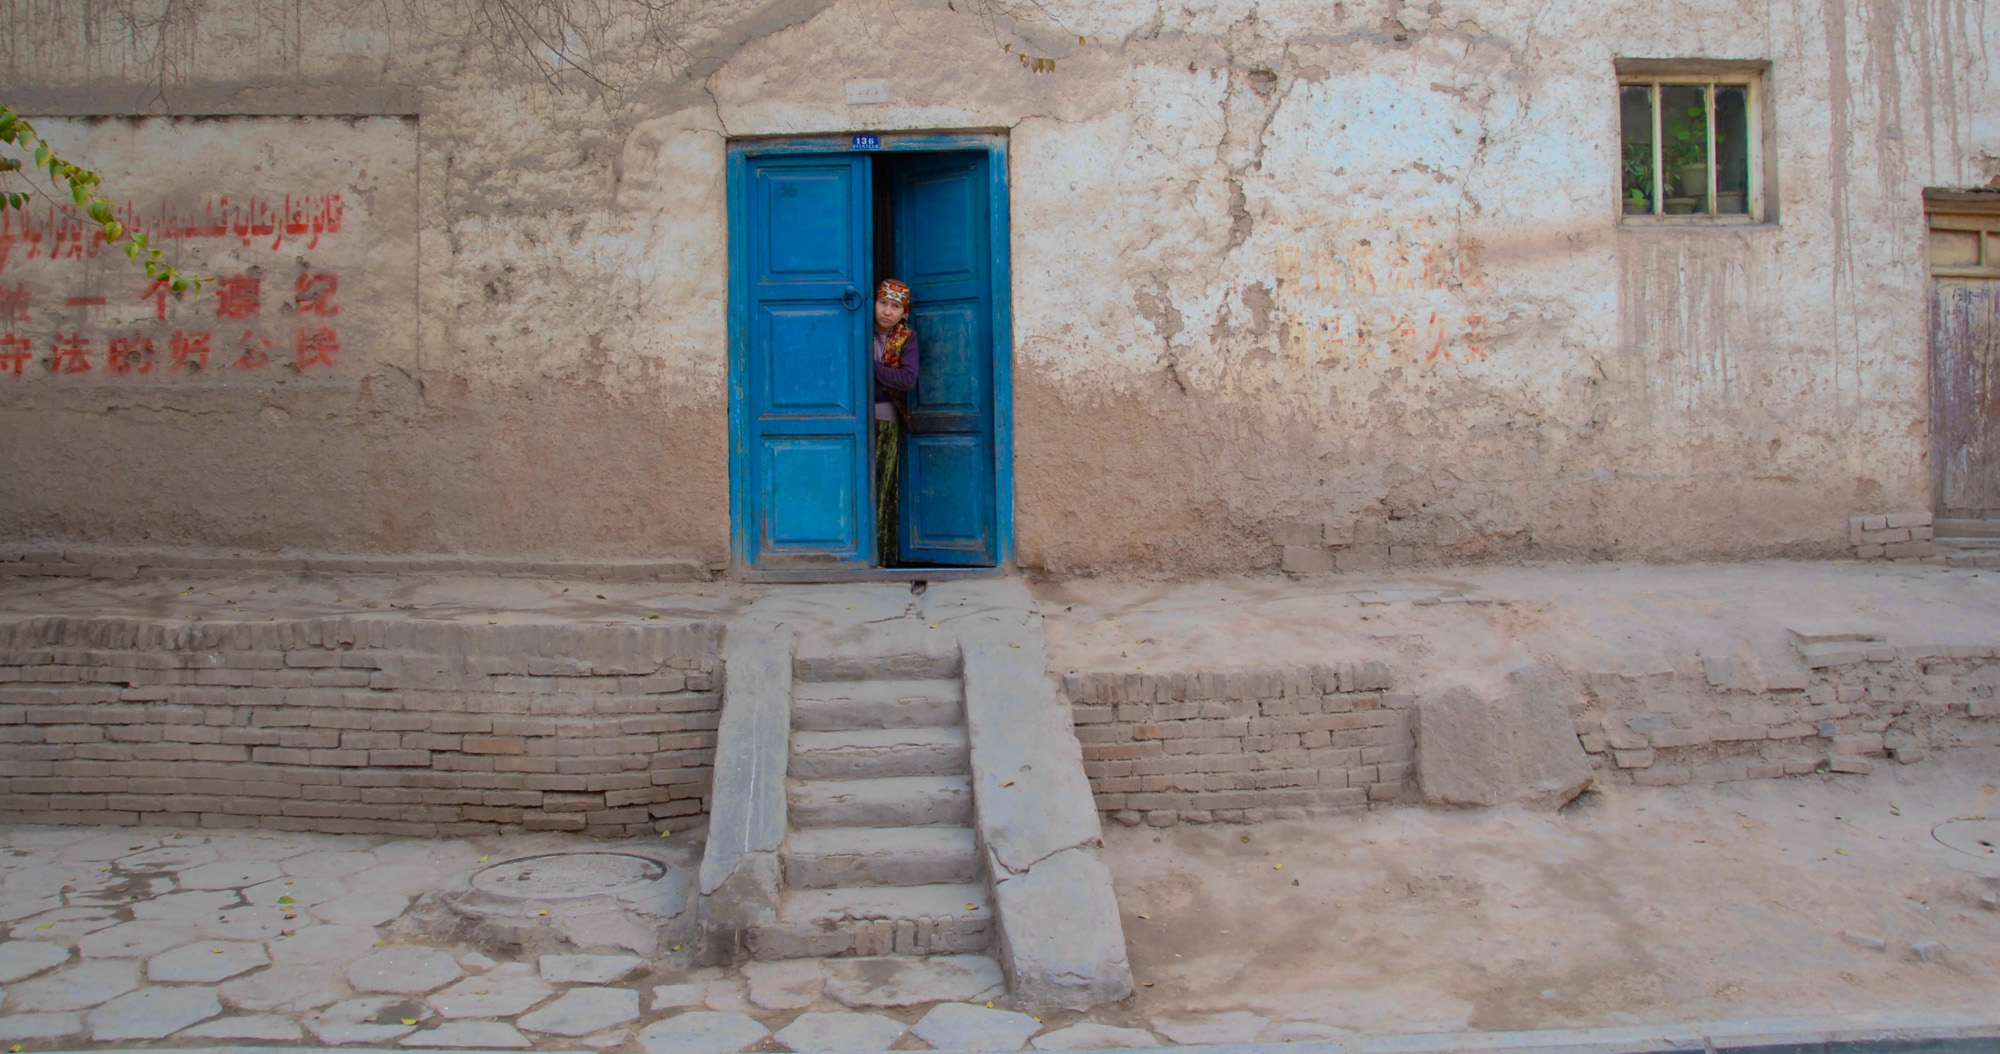 Kashgar, a people in distress